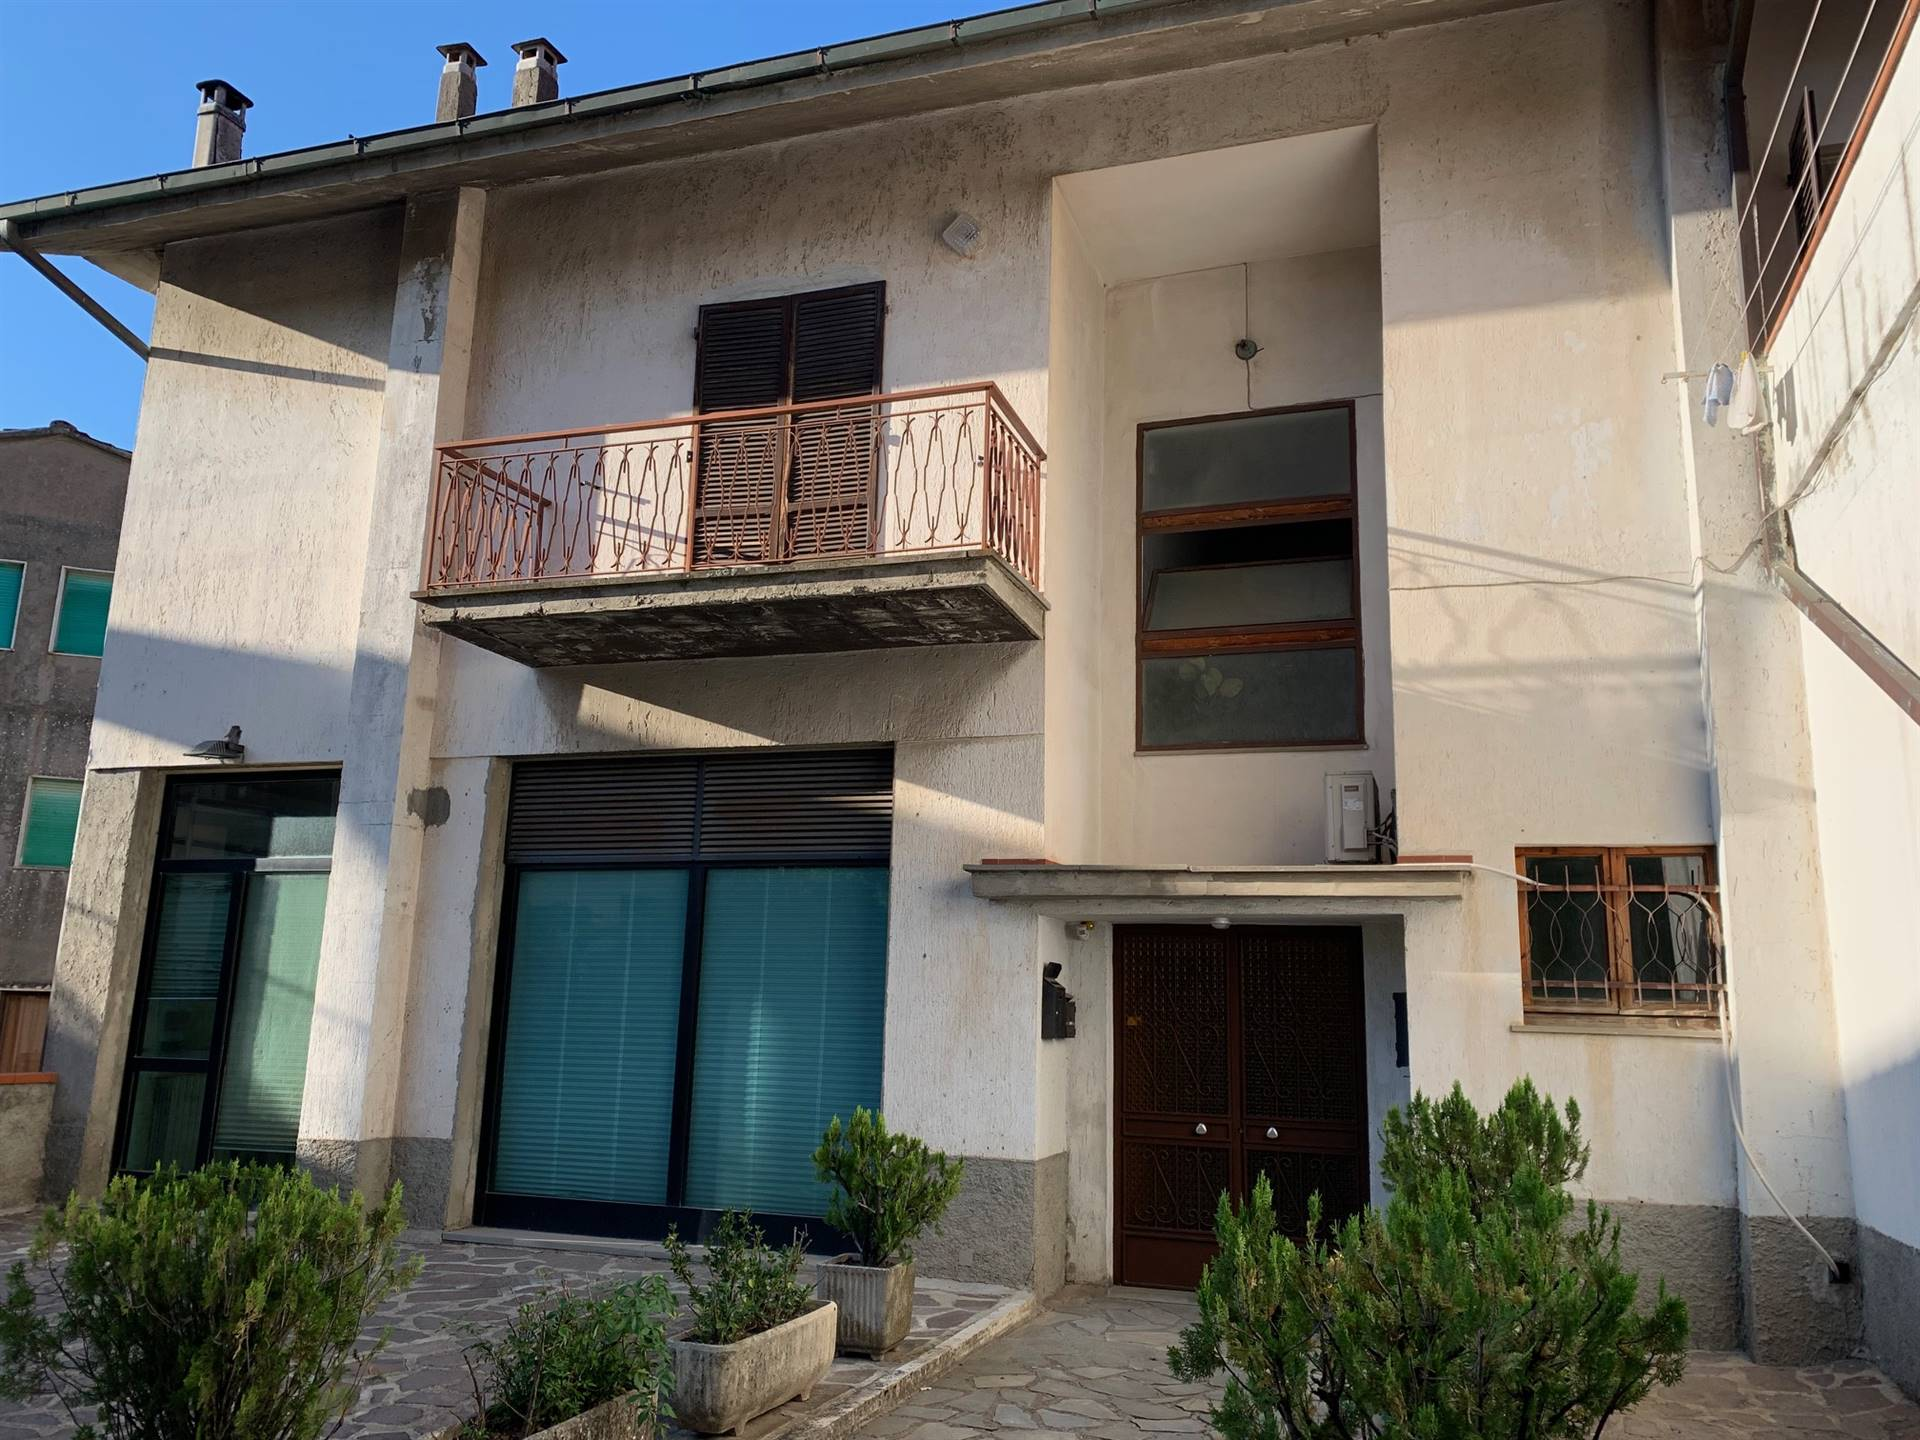 MONTE AMIATA VERSANTE GROSSETANO, CASTEL DEL PIANO, Office for rent, Good condition, Heating Individual heating system, Energetic class: G, Epi: 200,